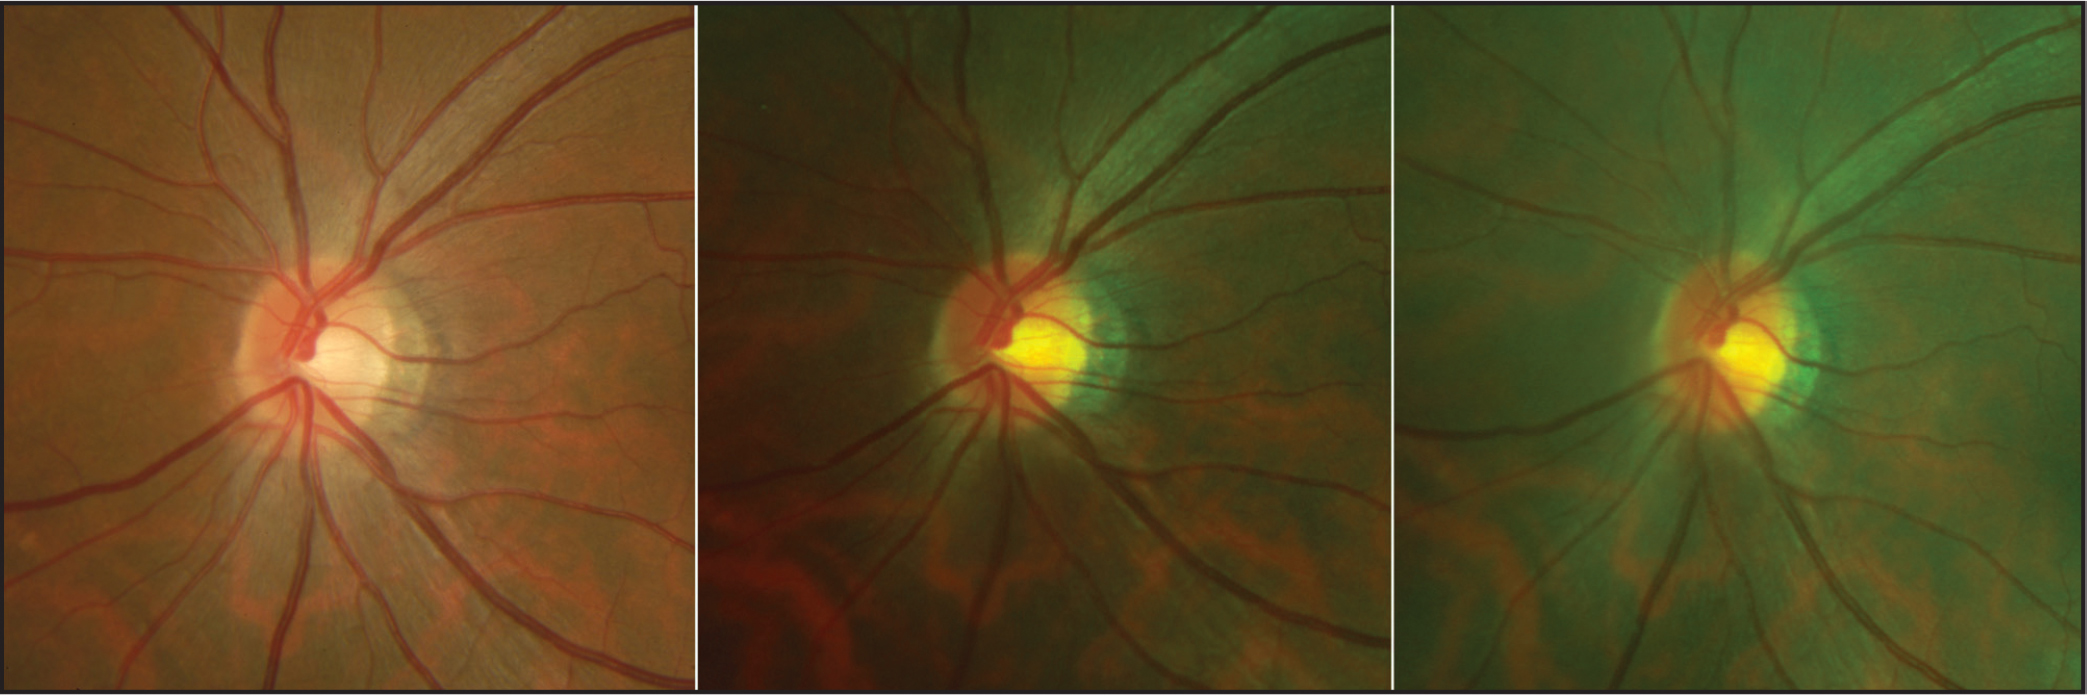 Optic disc images of the same eye. The left image was taken with a Topcon retinal camera, middle image with the Optos ultra-widefield system with the head in a conventional position, and the right image taken with the Optos ultra-widefield system with head in the 90° rotated position with the resulting image rotated back.